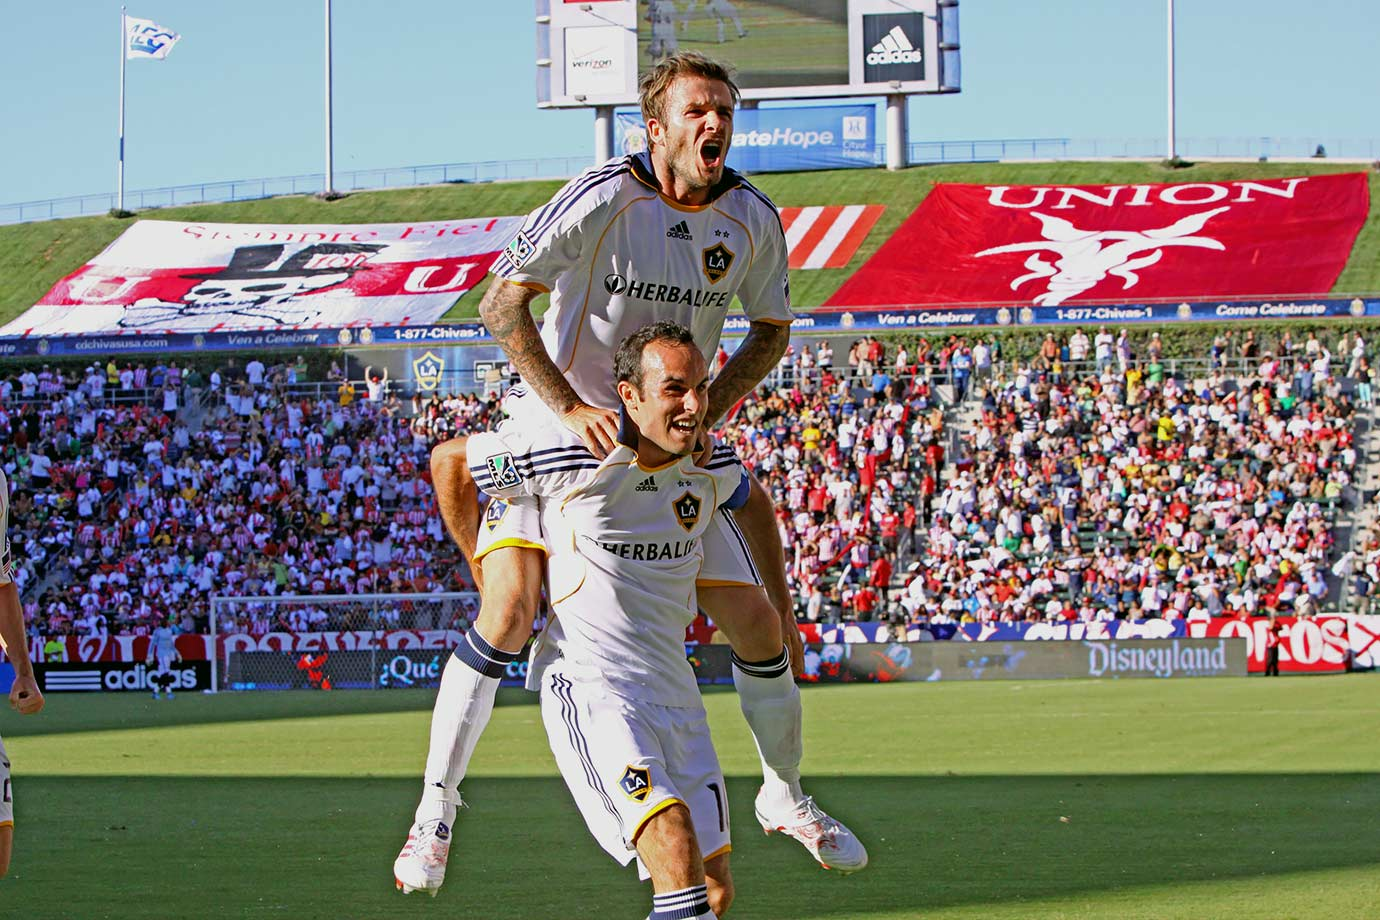 Landon Donovan and David Beckham of the Los Angeles Galaxy celebrate scoring a goal against Chivas USA during Game One of the MLS Western Conference Semifinals at The Home Depot Center in Carson, Calif.